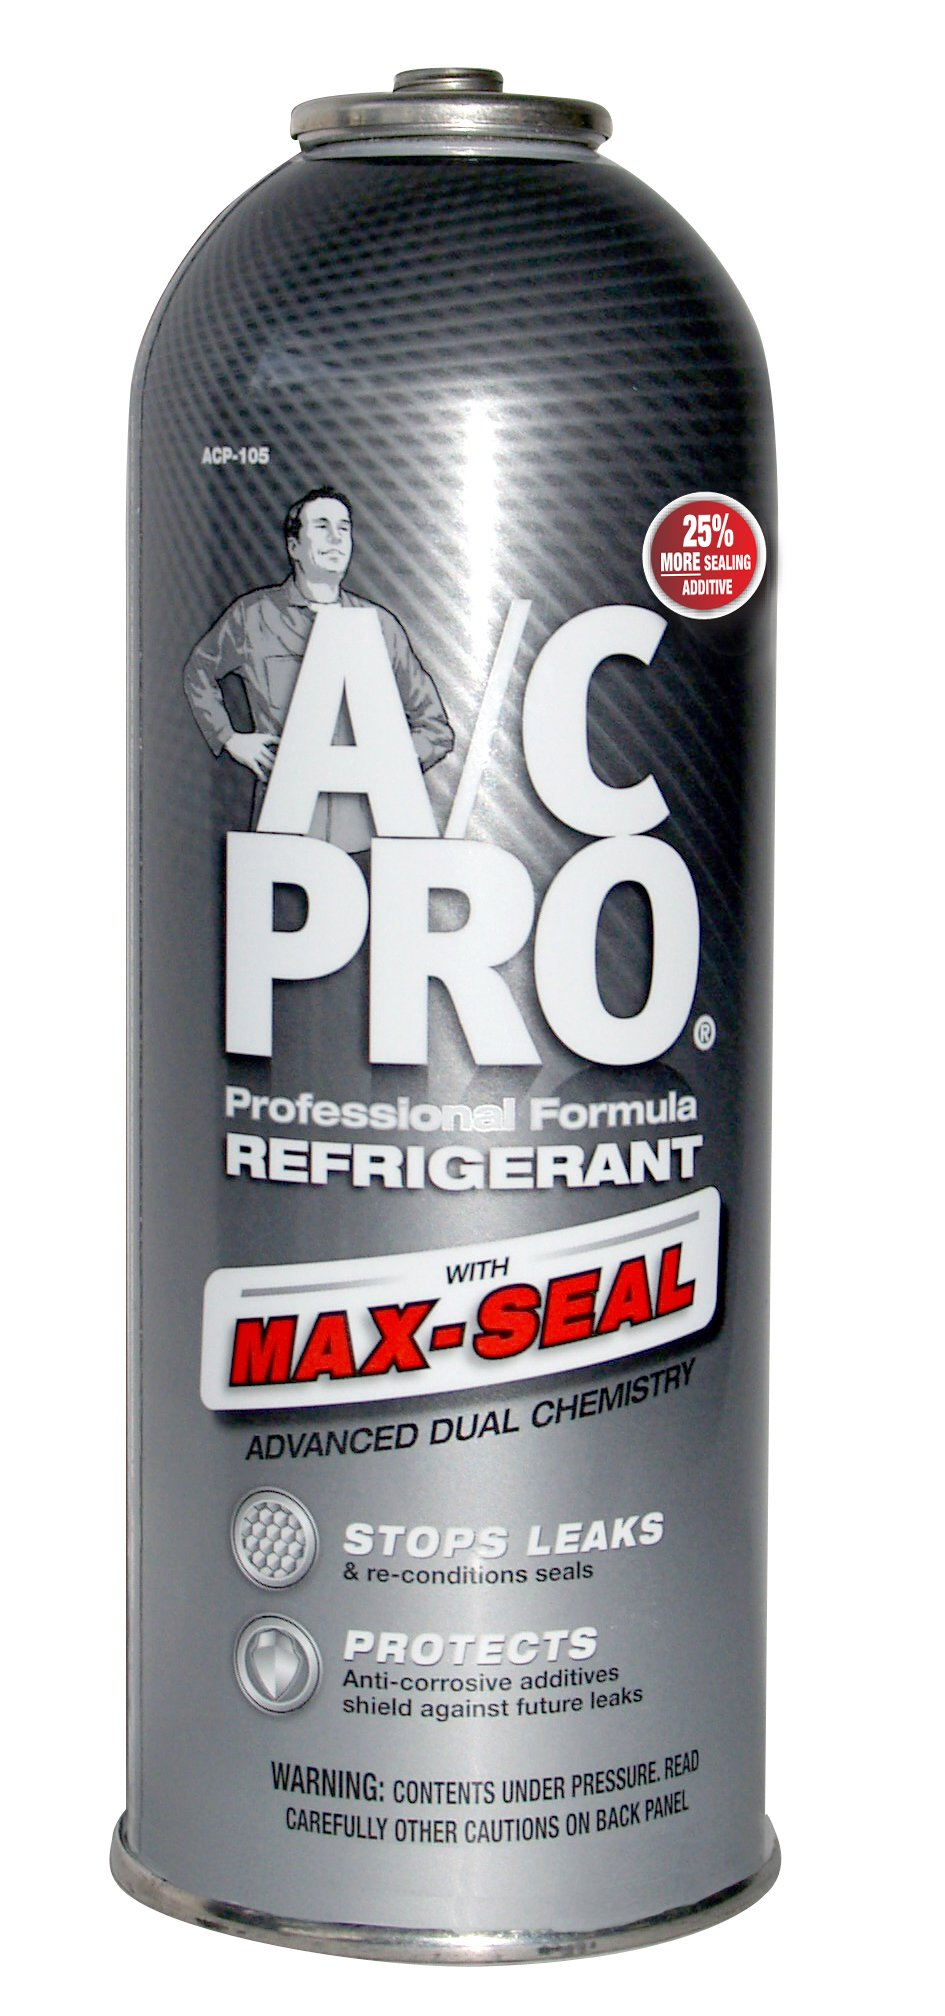 Interdynamics A/C Pro ACP-105 Refrigerant With Max-Seal (12 ounces) by Interdynamics